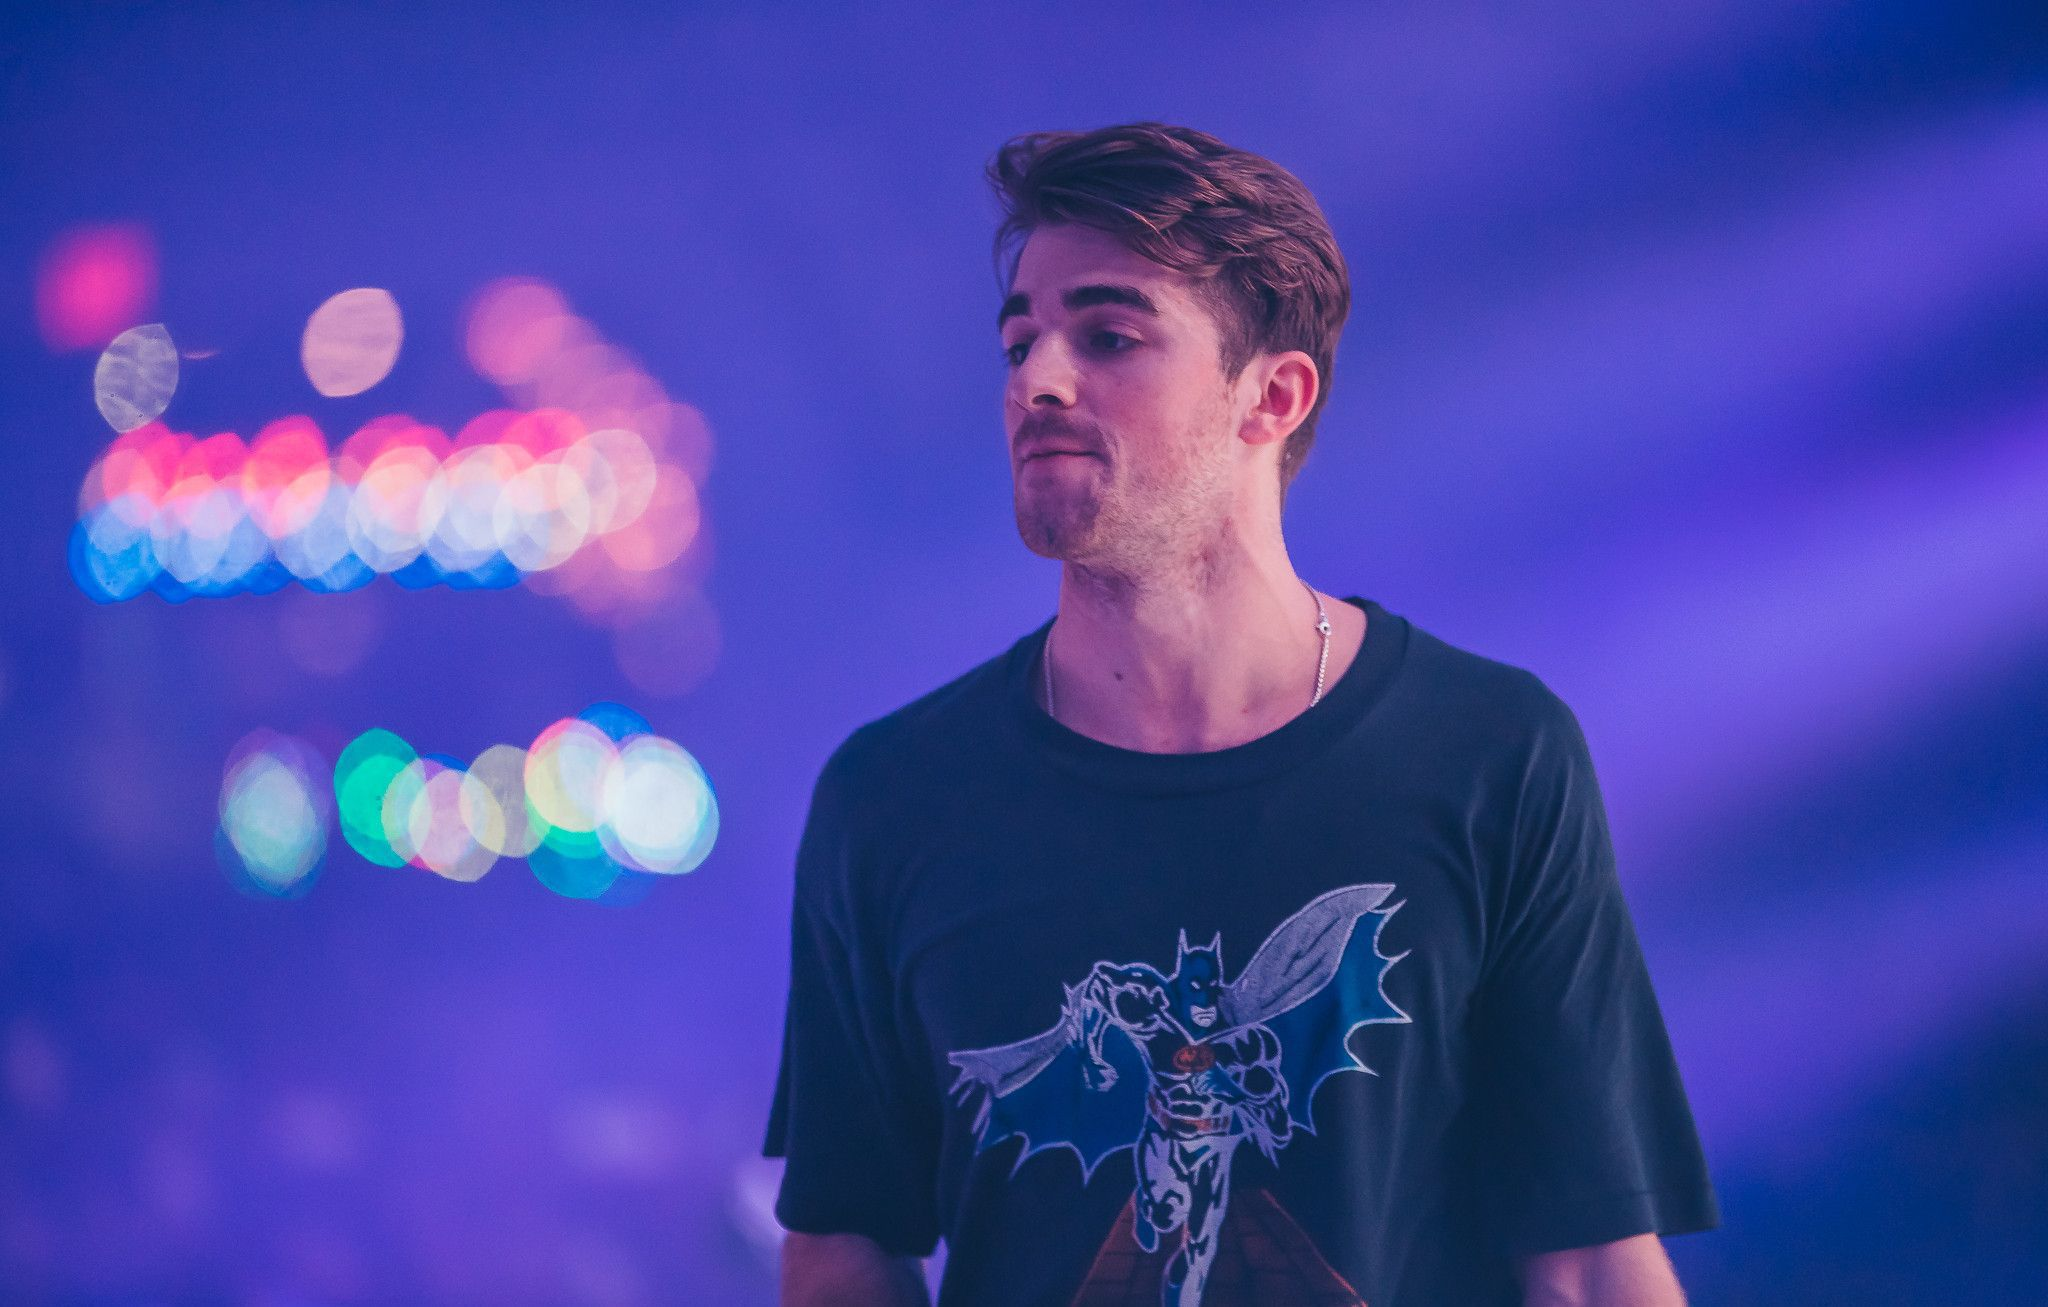 Wallpapers For Guys And Girls The Chainsmokers Wallpapers Backgrounds